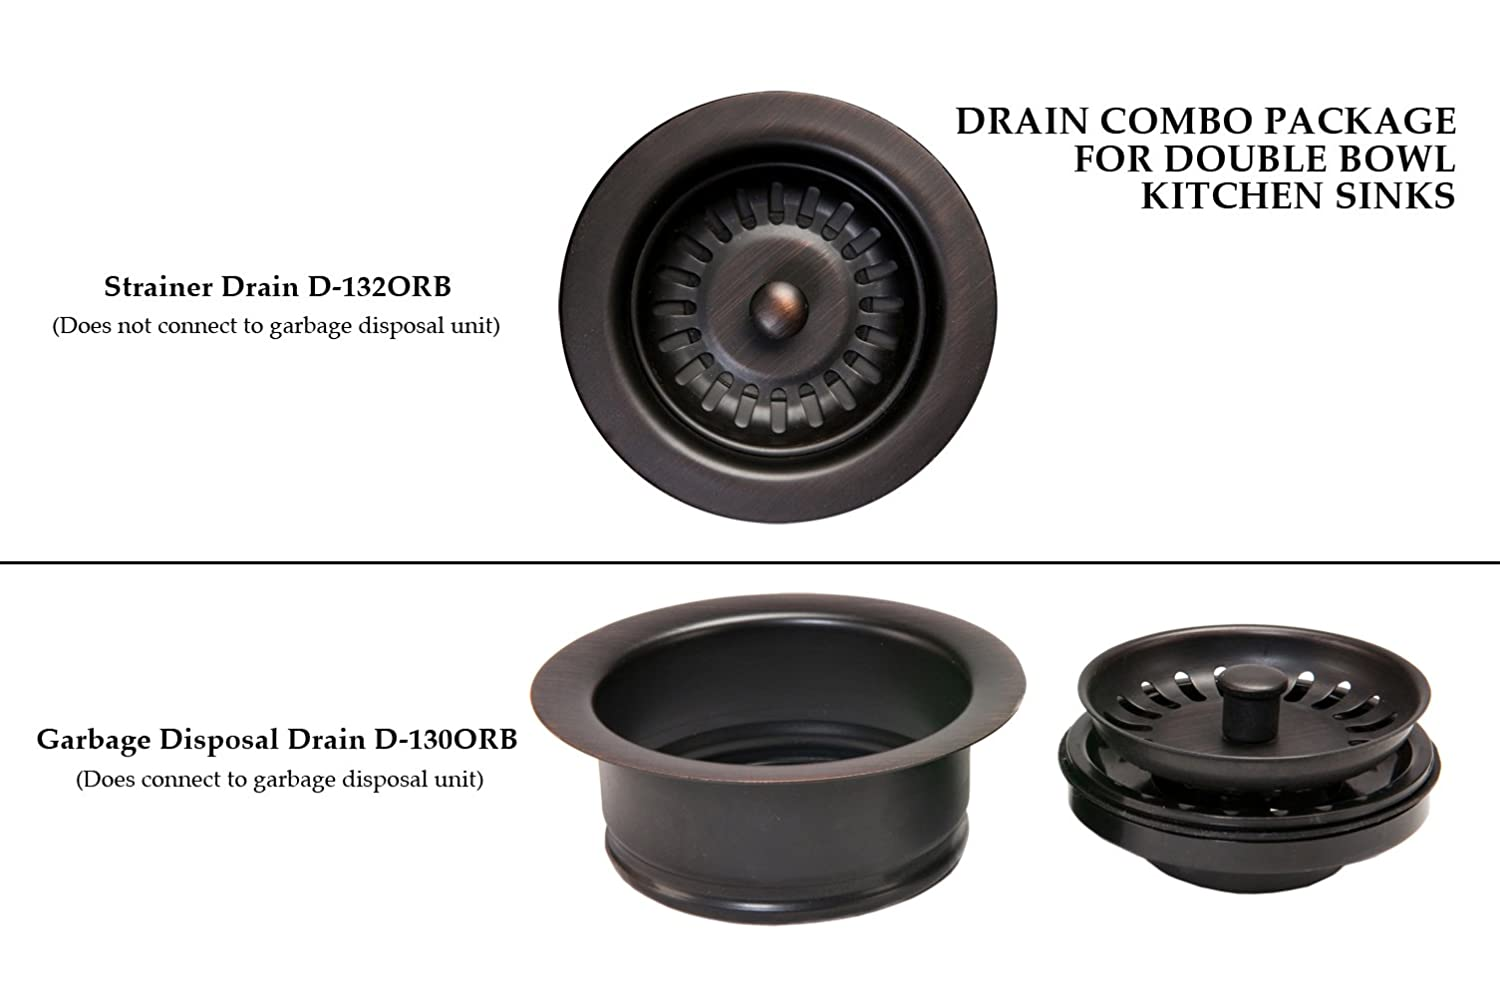 Premier Copper Products Dc 1orb Drain Combination Package For Double Bowl Kitchen Sinks Oil Rubbed Bronze Utility Sinks Amazon Com